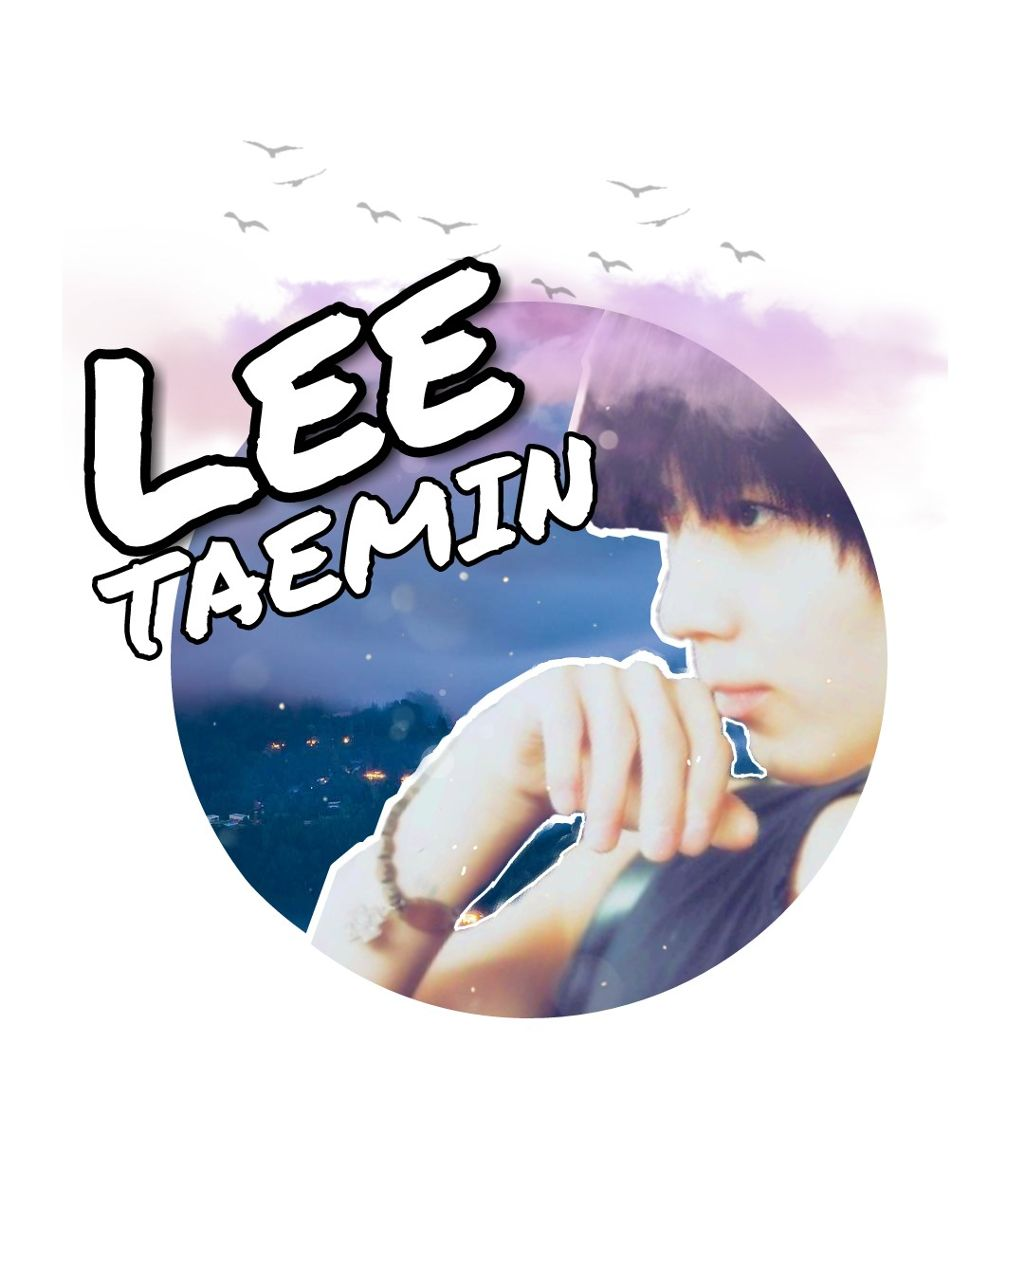 Kpop Idol Name : Lee Taemin Group : SHINee kpop shinee